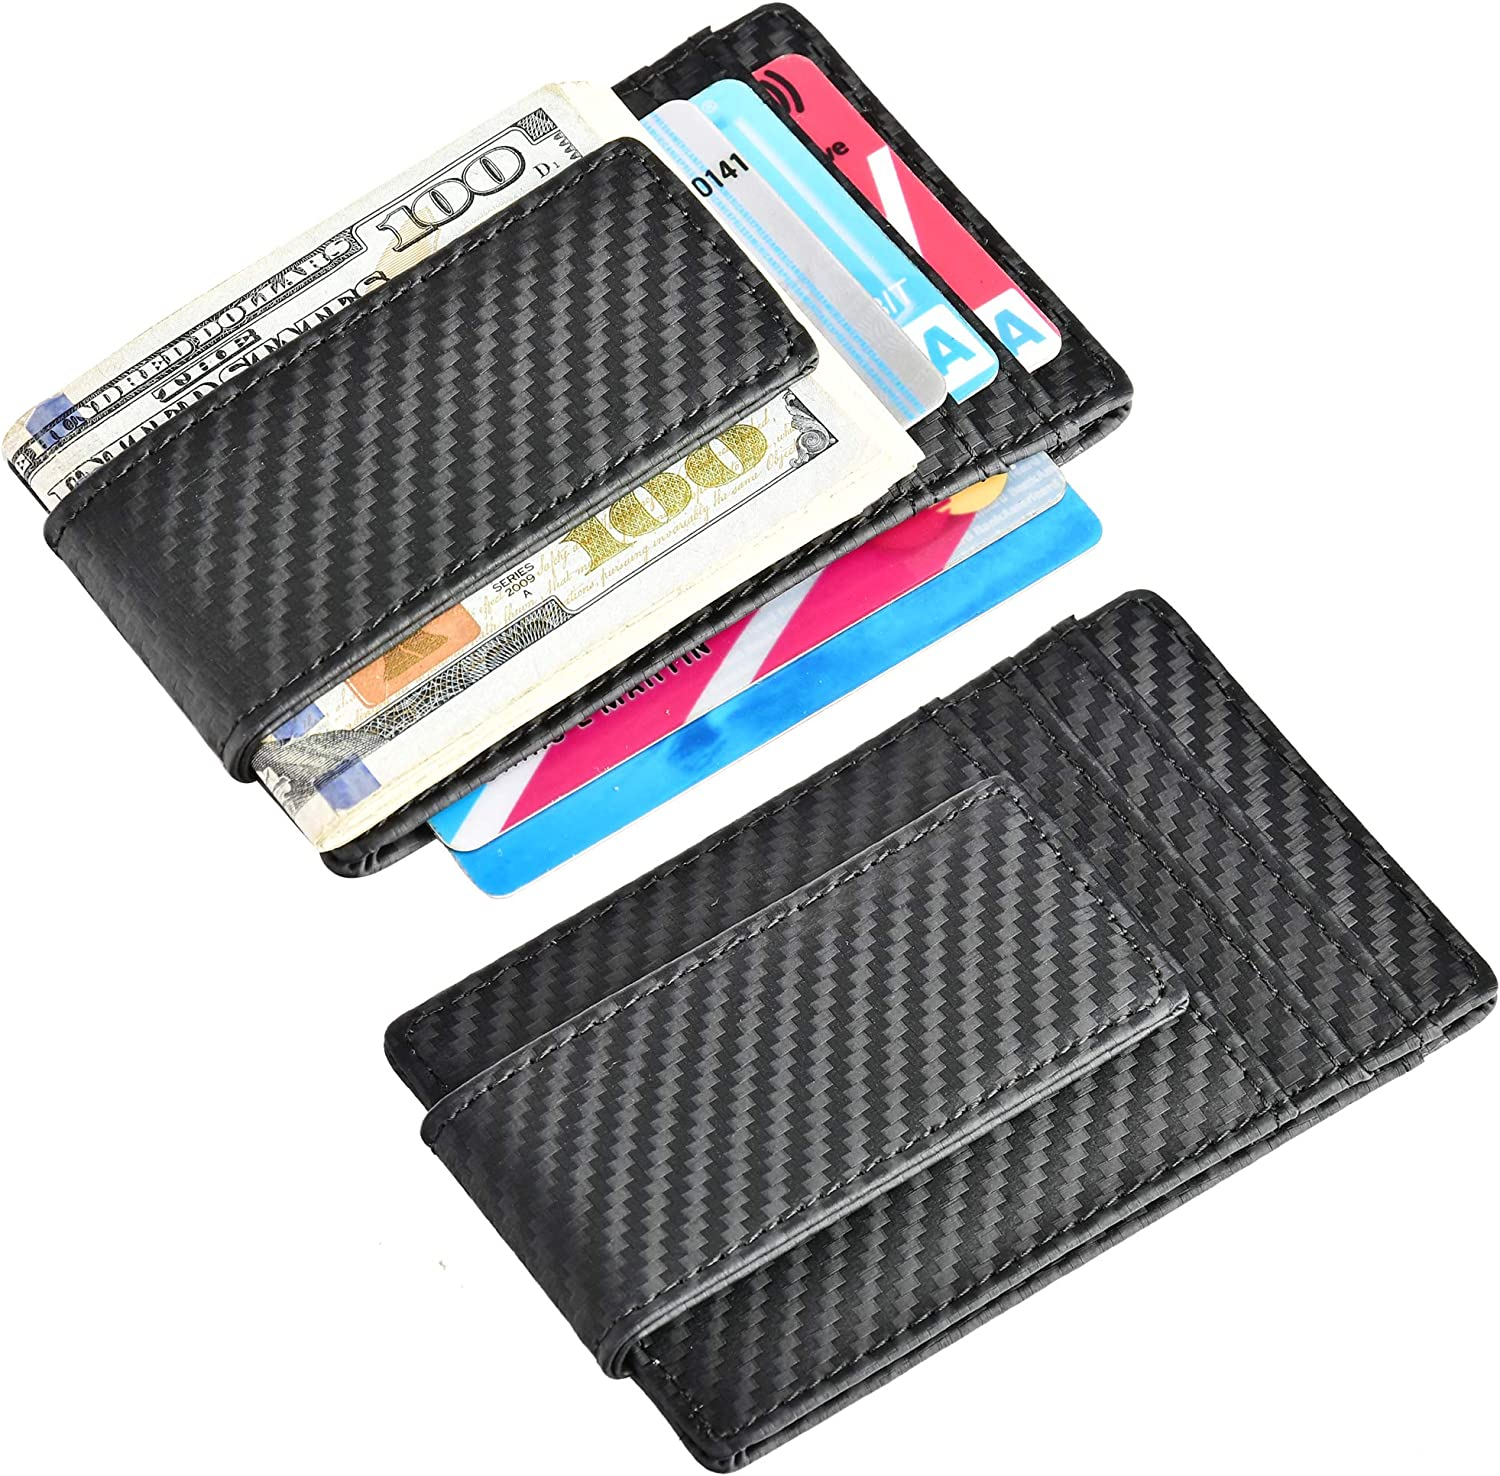 Front Pocket Wallet C Carbon Fiber ID Window 2 Leather RFID Blocking Strong Magnet thin Wallet Money Clip